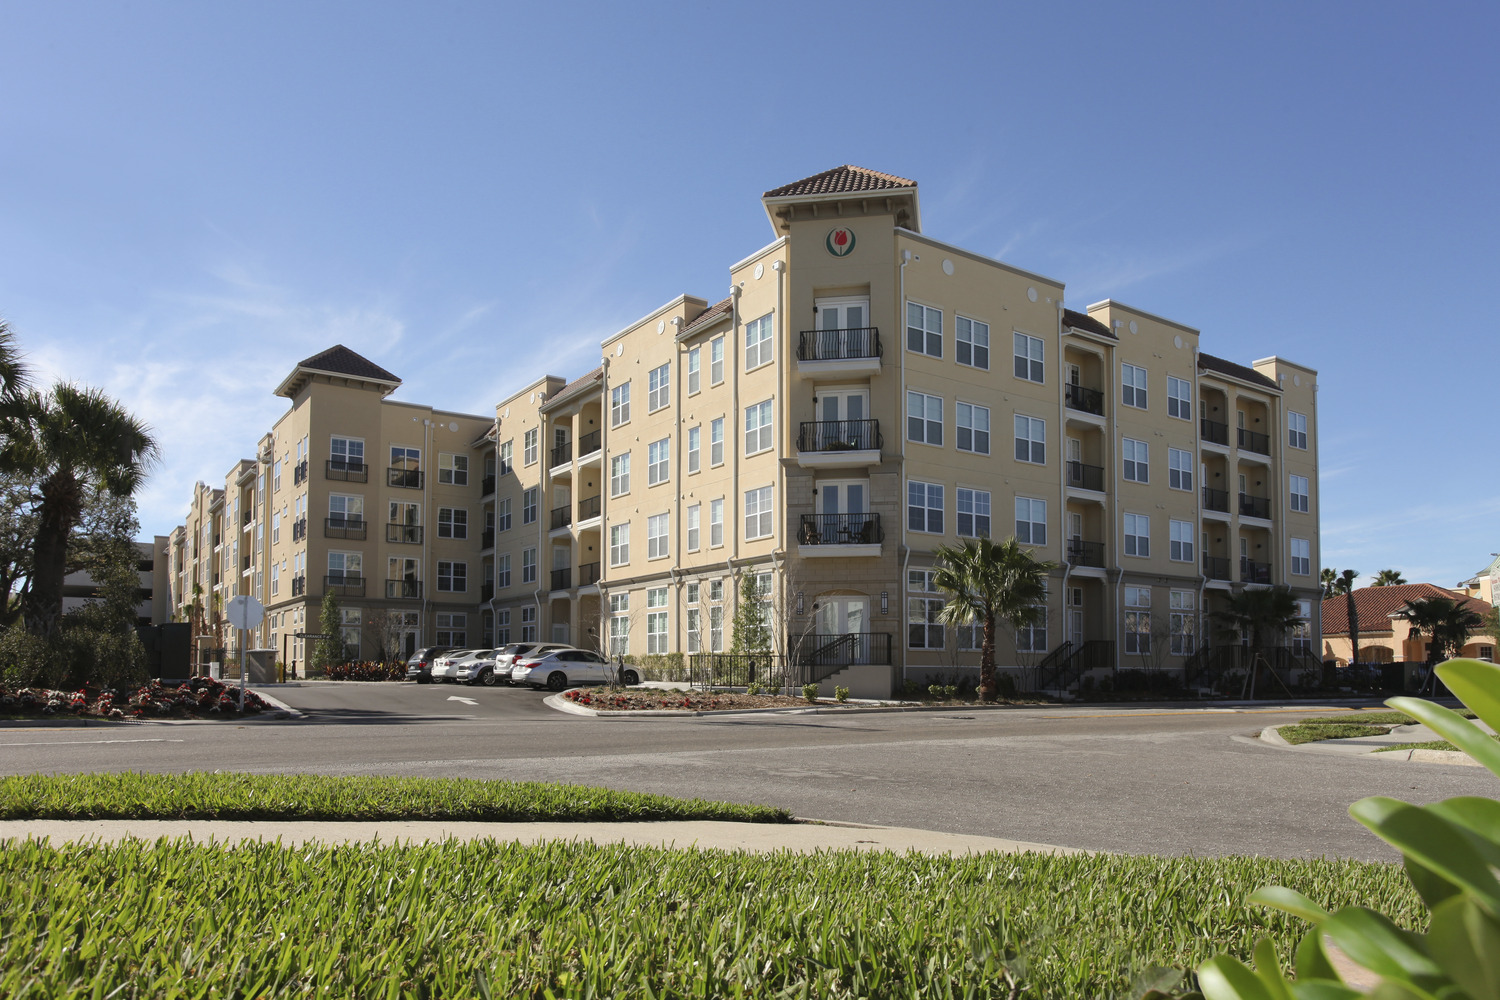 CBG builds Post Soho Square, a 231-Unit Mixed-Use Luxury Apartment Community in Tampa, FL - Image #10